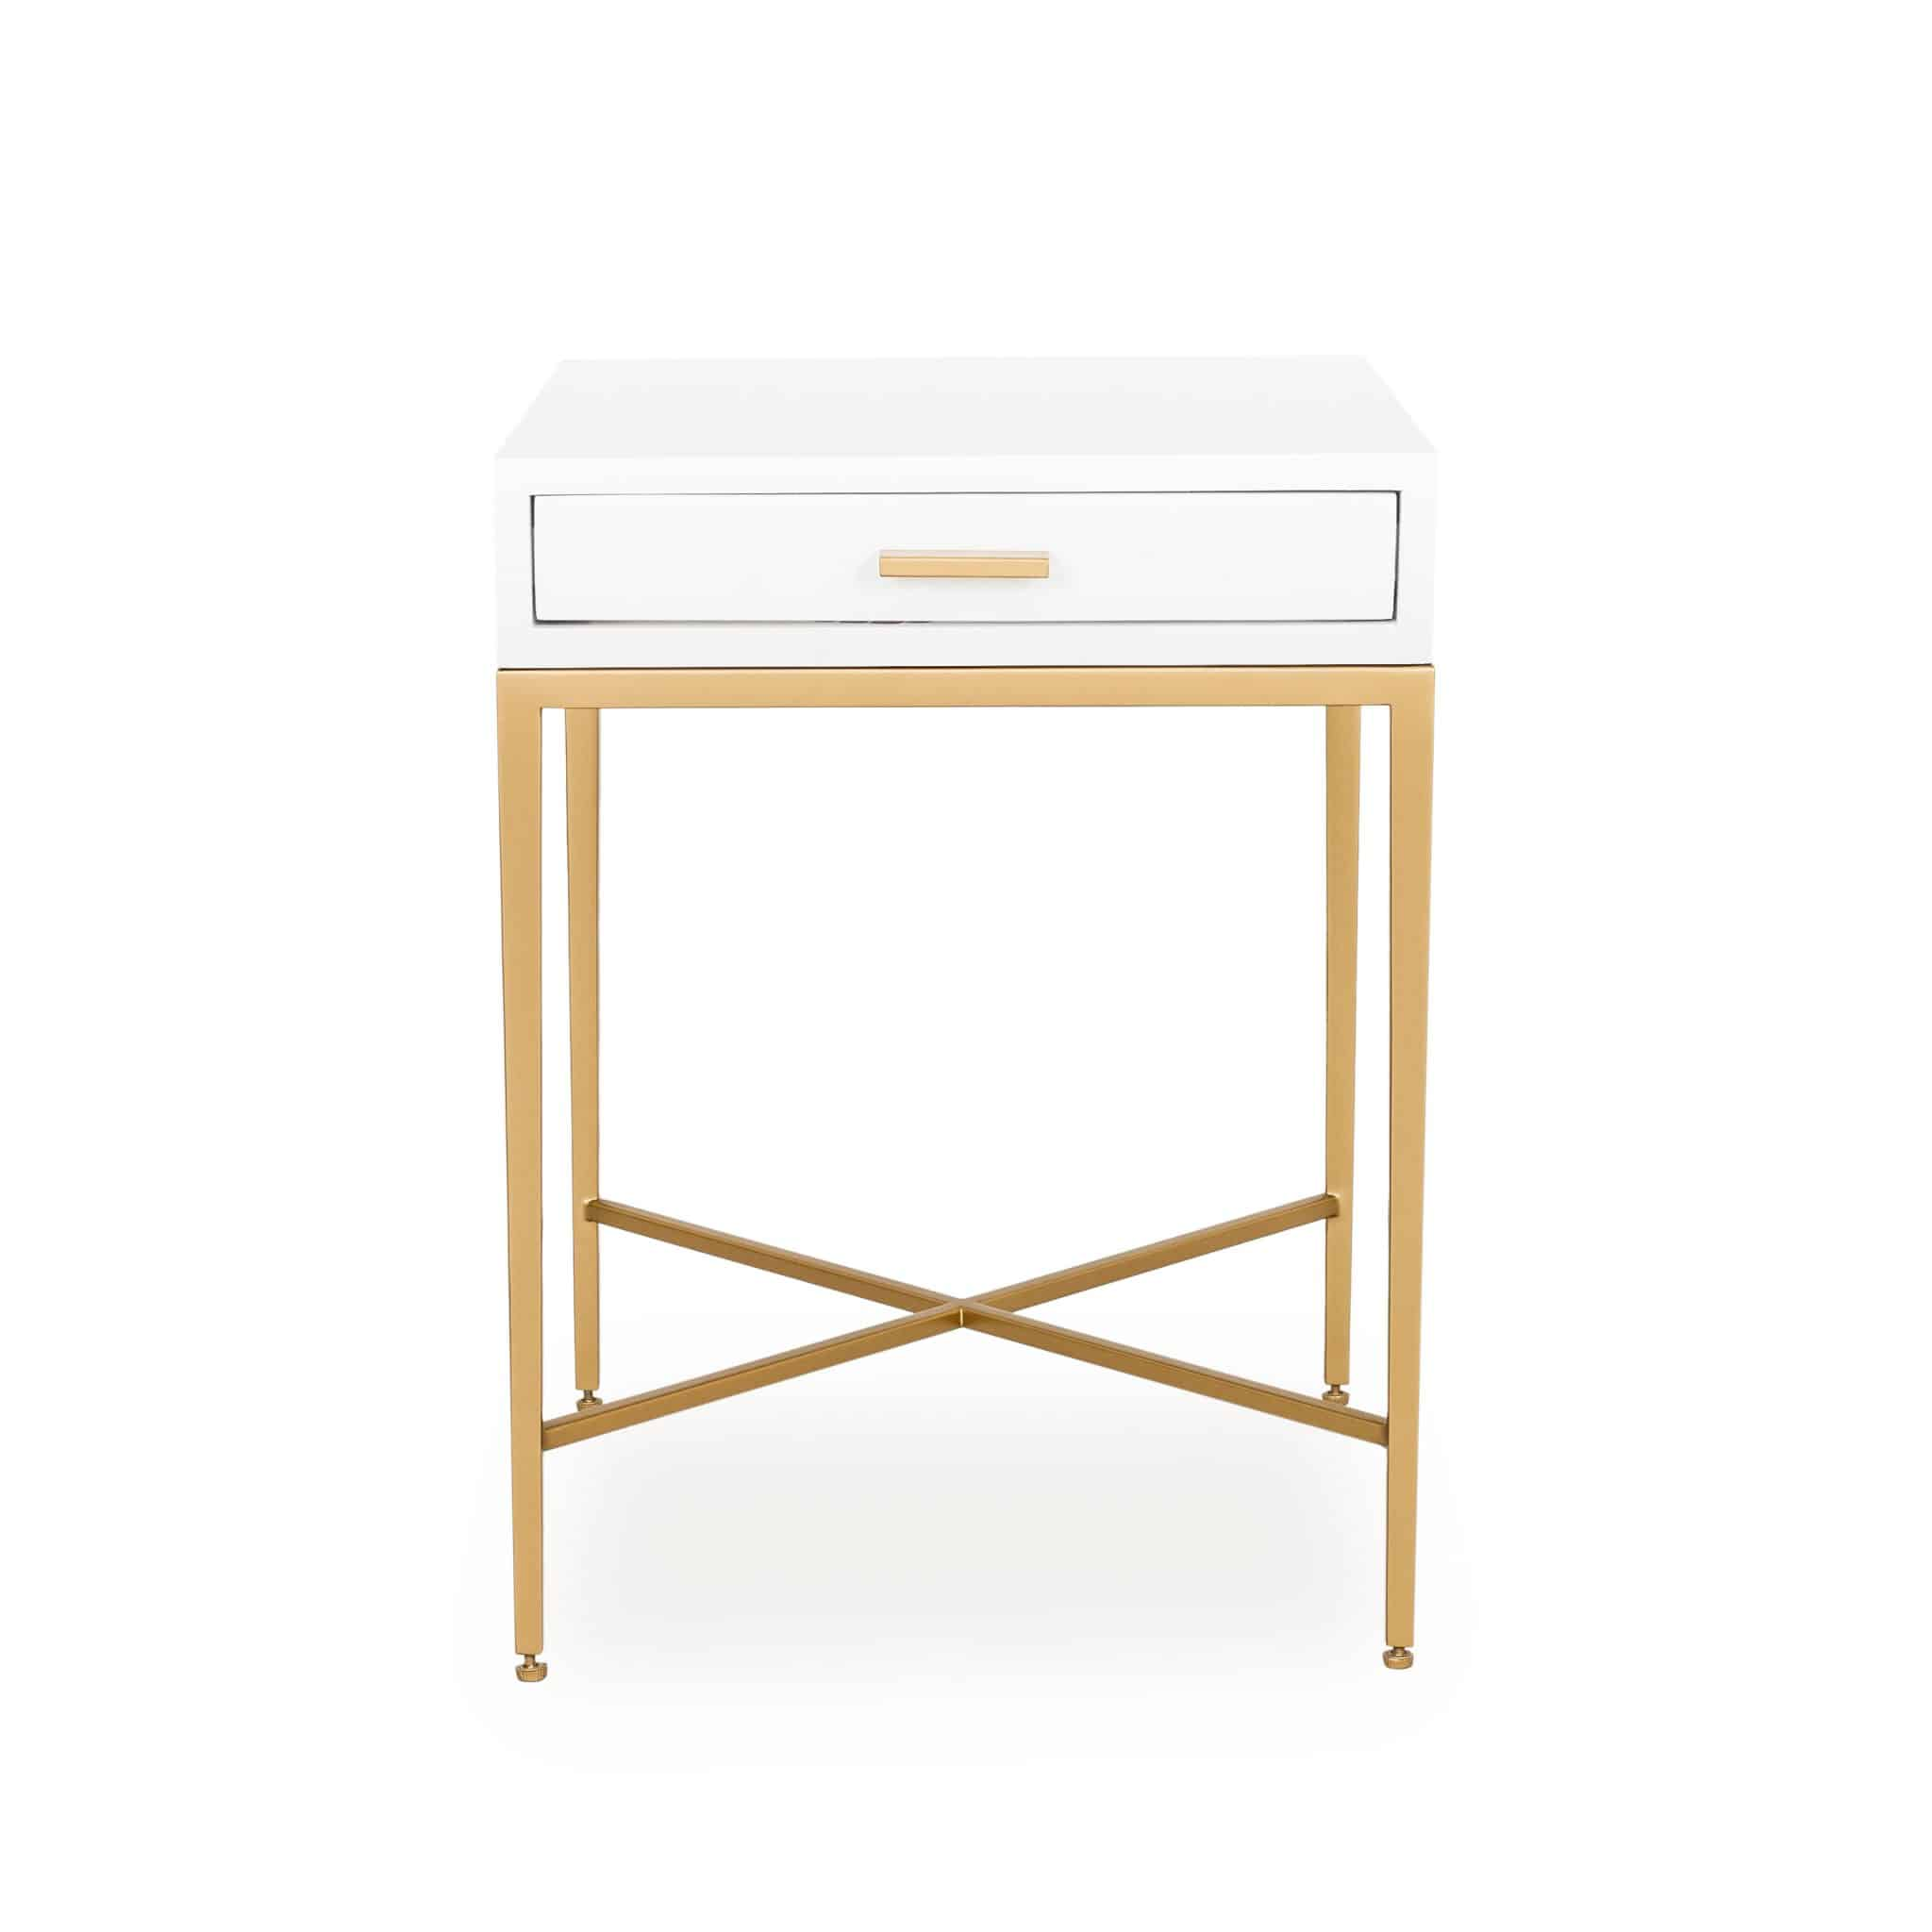 Berkeley bedside table in high gloss finish with gold handles and fine legs